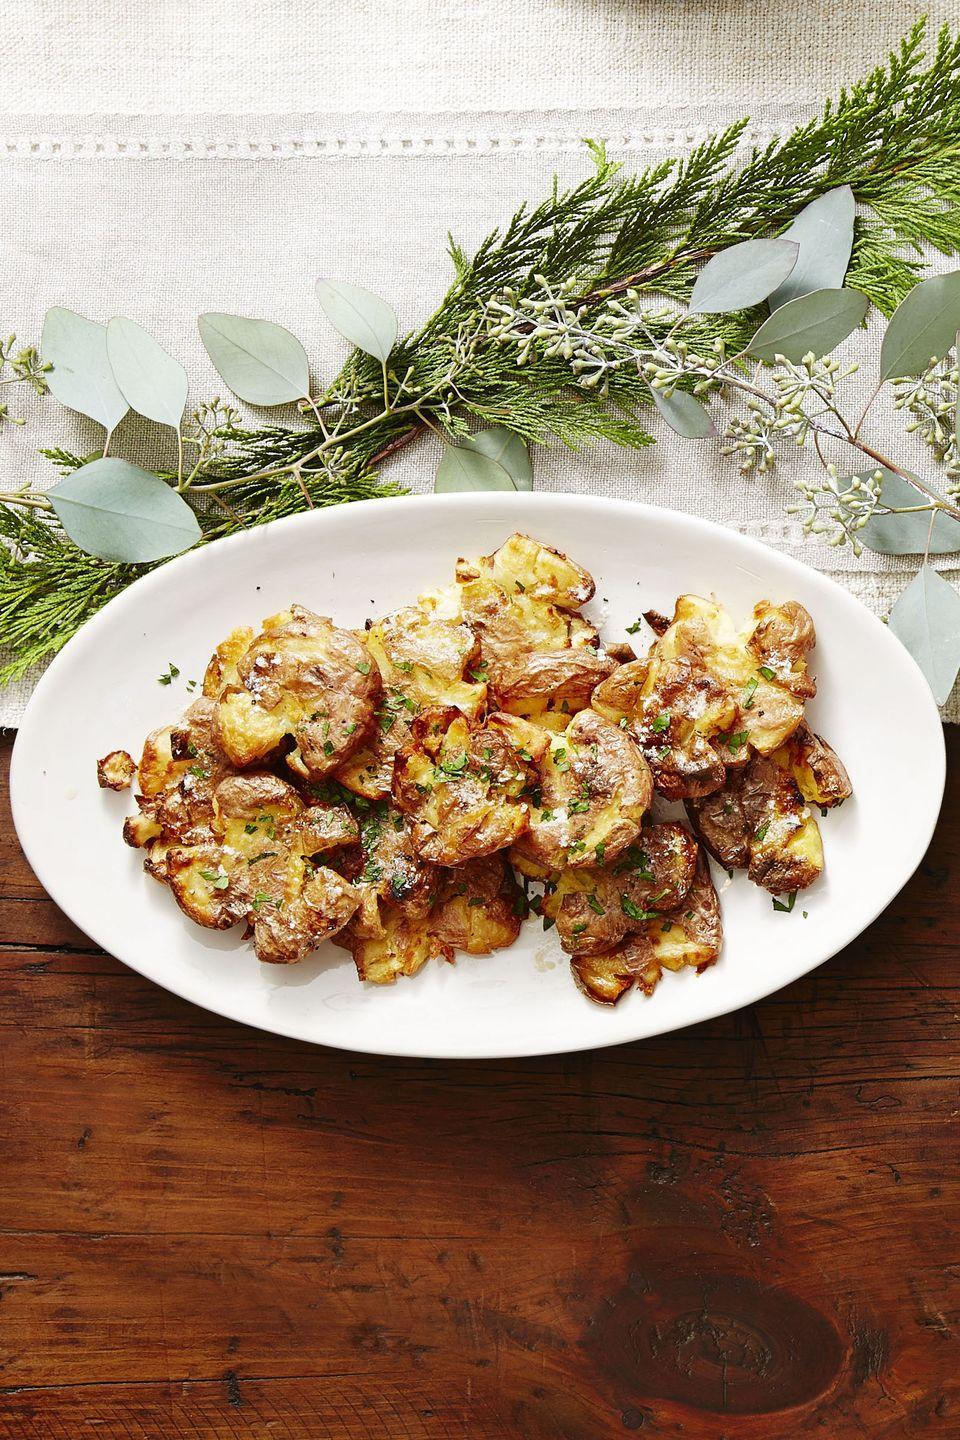 """<p>You'll forget all about the mashed potatoes once you taste these crispy, buttery spuds.</p><p><em><a href=""""https://www.goodhousekeeping.com/food-recipes/a41684/crispy-golden-smashed-potatoes-recipe/"""" rel=""""nofollow noopener"""" target=""""_blank"""" data-ylk=""""slk:Get the recipe for Crispy Golden Smashed Potatoes »"""" class=""""link rapid-noclick-resp"""">Get the recipe for Crispy Golden Smashed Potatoes »</a></em></p>"""